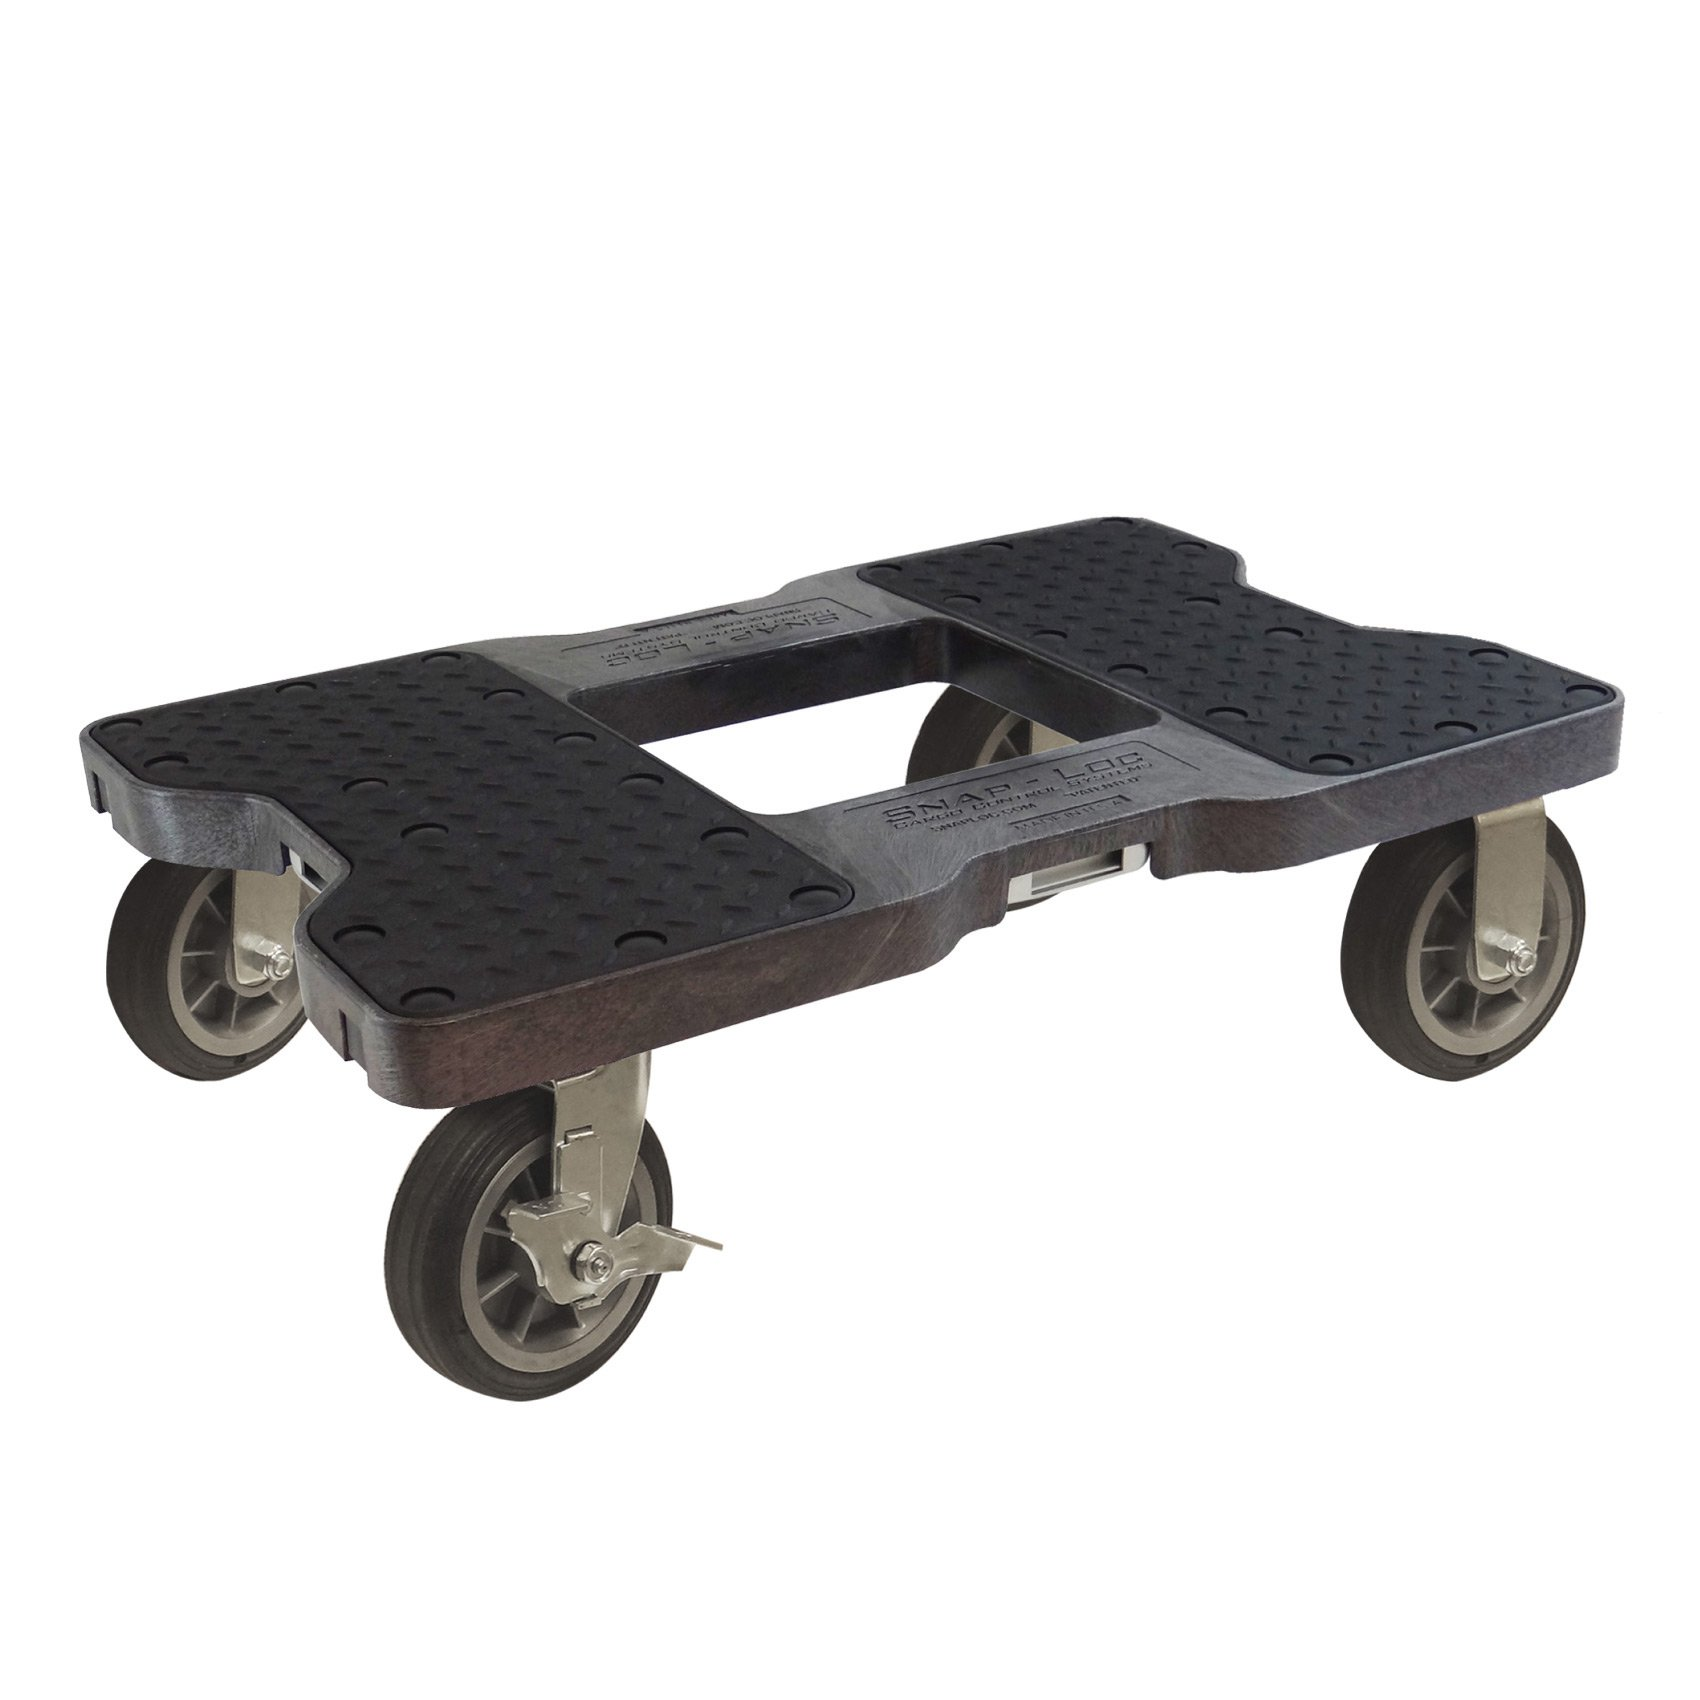 SNAP-LOC ALL-TERRAIN DOLLY BLACK (USA!) with 1500 lb Capacity, Steel Frame, 6 inch Casters and optional E-Strap Attachment by Snap-Loc Cargo Control Systems